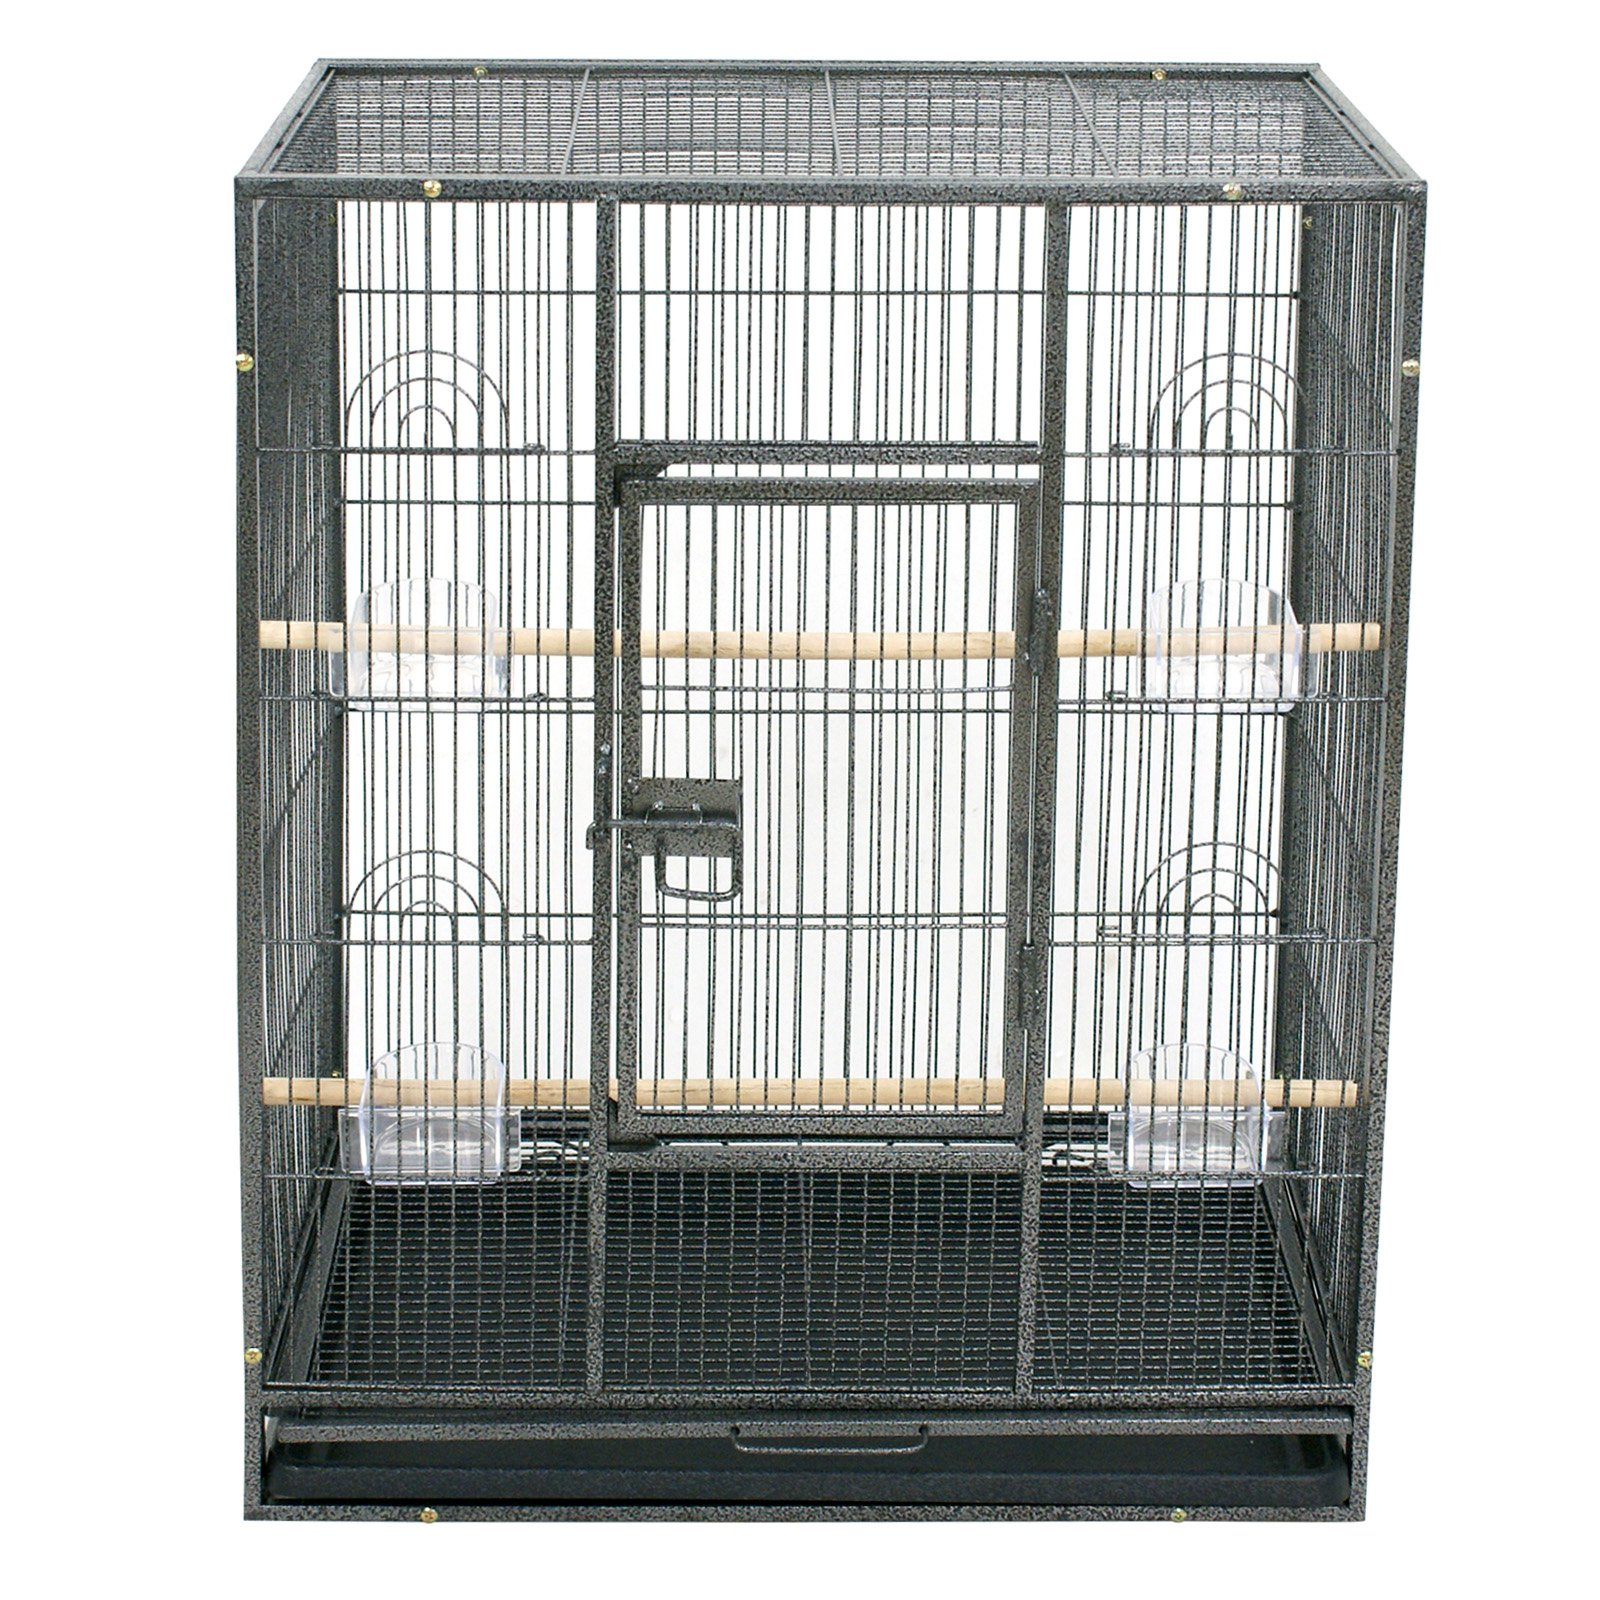 Super Deal 53''/61''/68'' Large Bird Cage Play Top Parrot Chinchilla Cage Macaw Cockatiel Cockatoo Pet House, 53 inch by SuperDealUsa (Image #3)